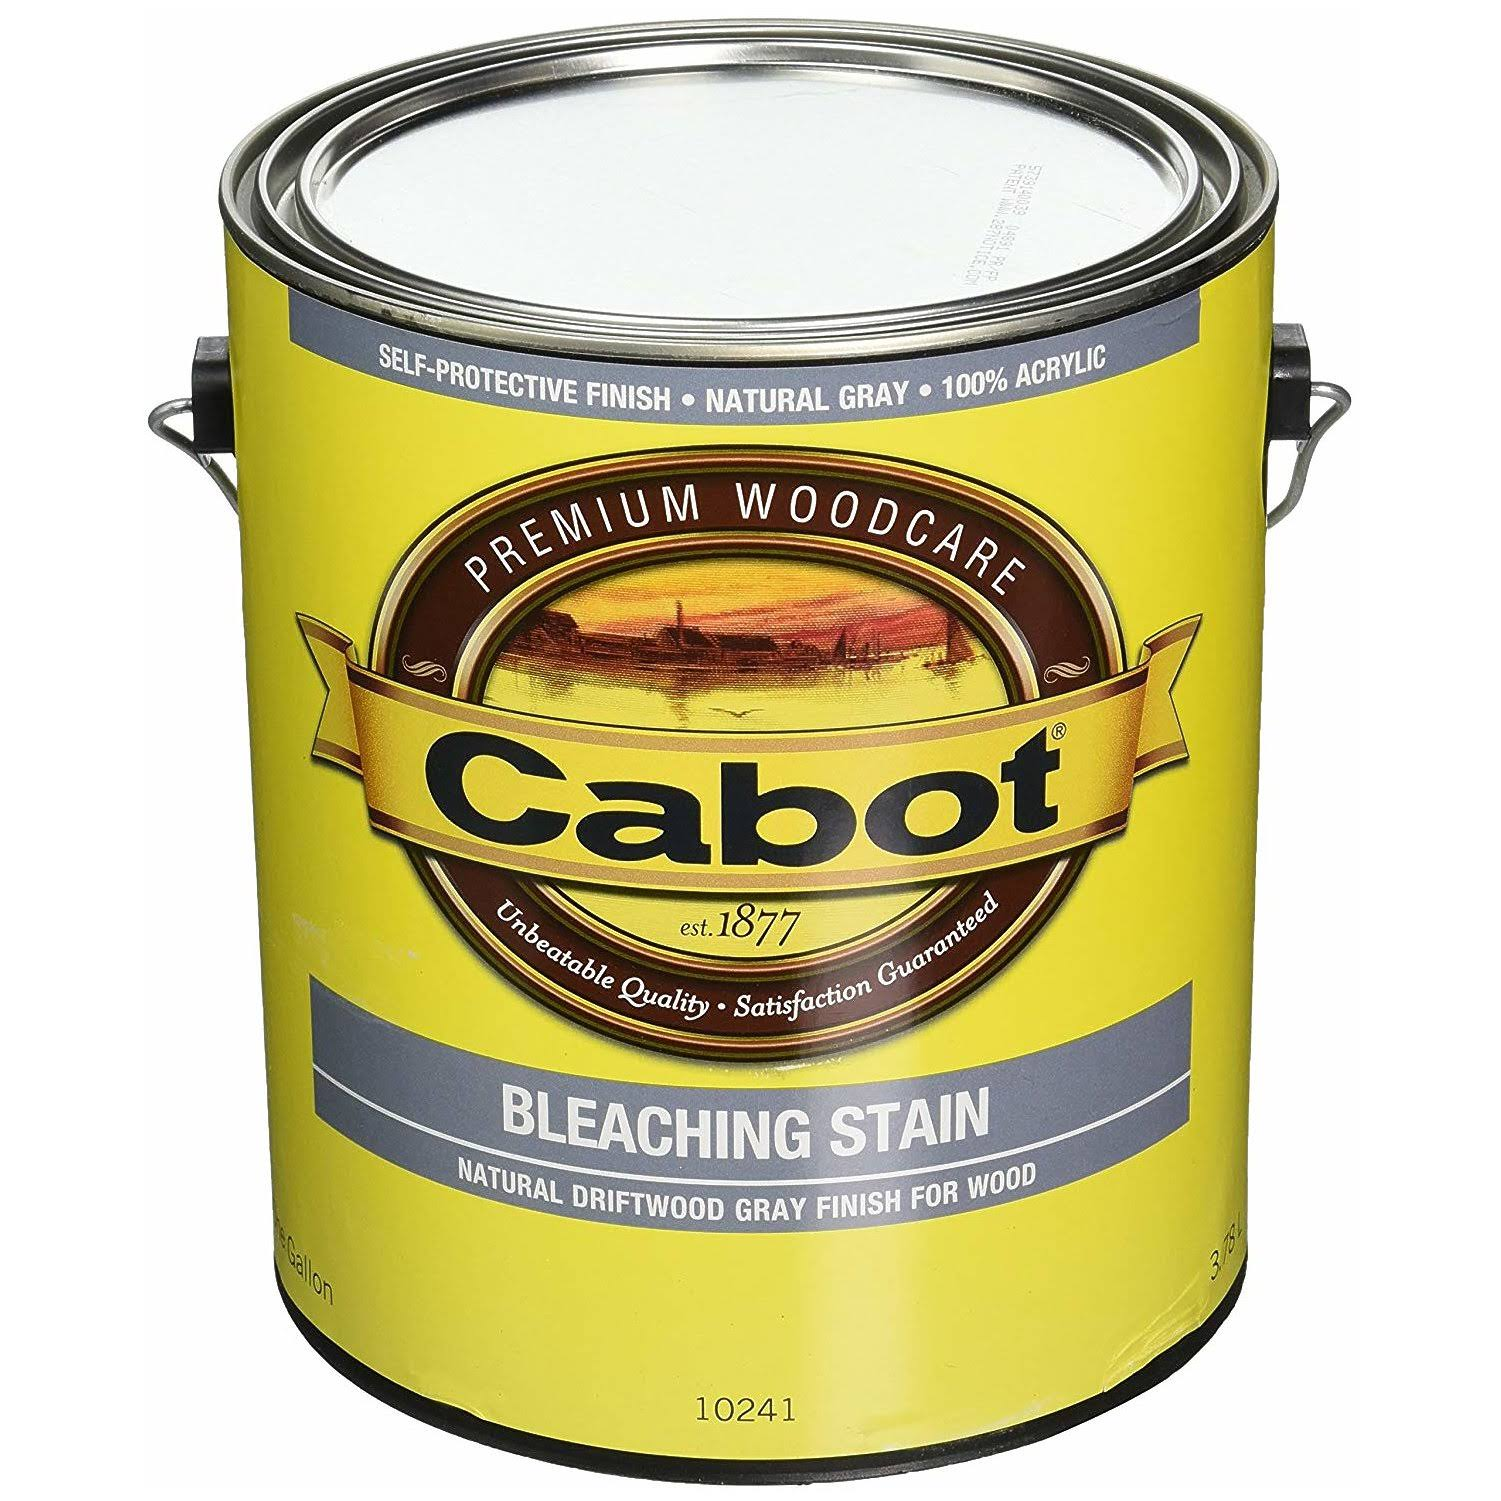 Cabot Bleaching Stain - 1 Gallon